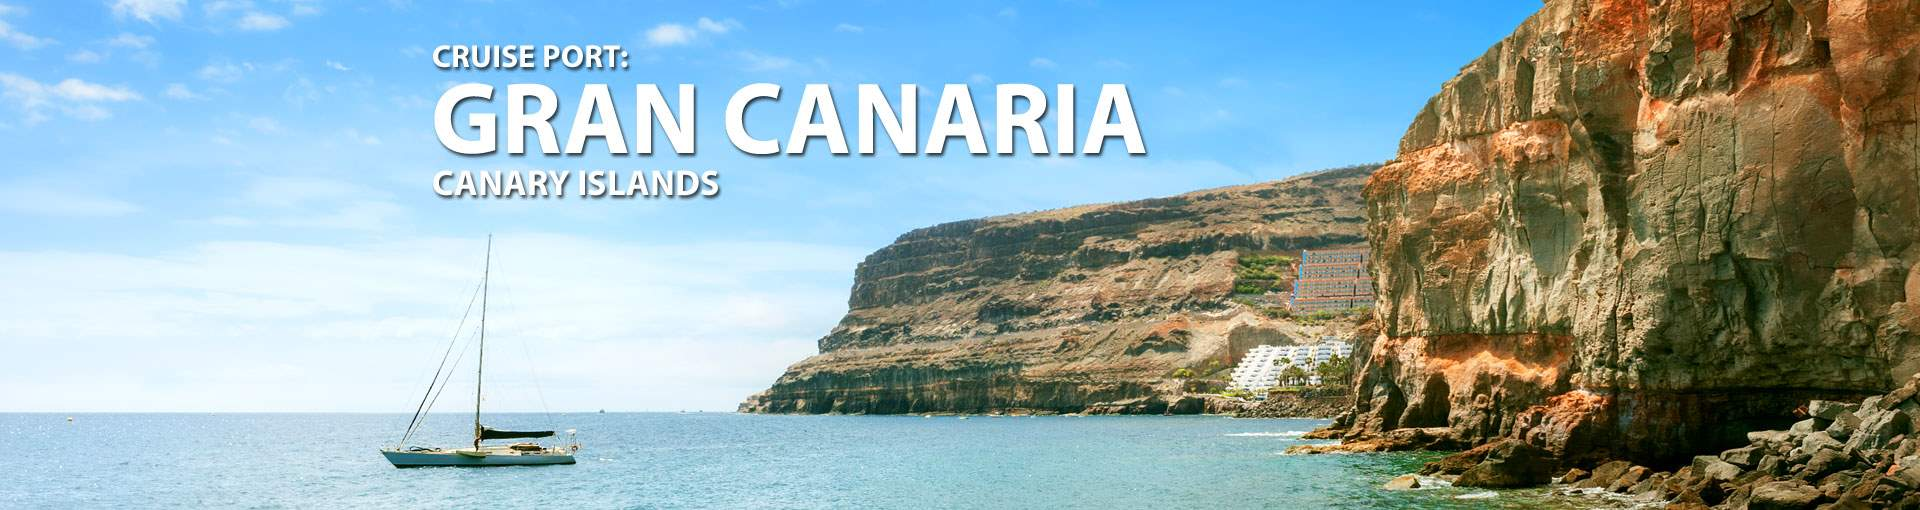 Cruises to Gran Canaria, Canary Islands